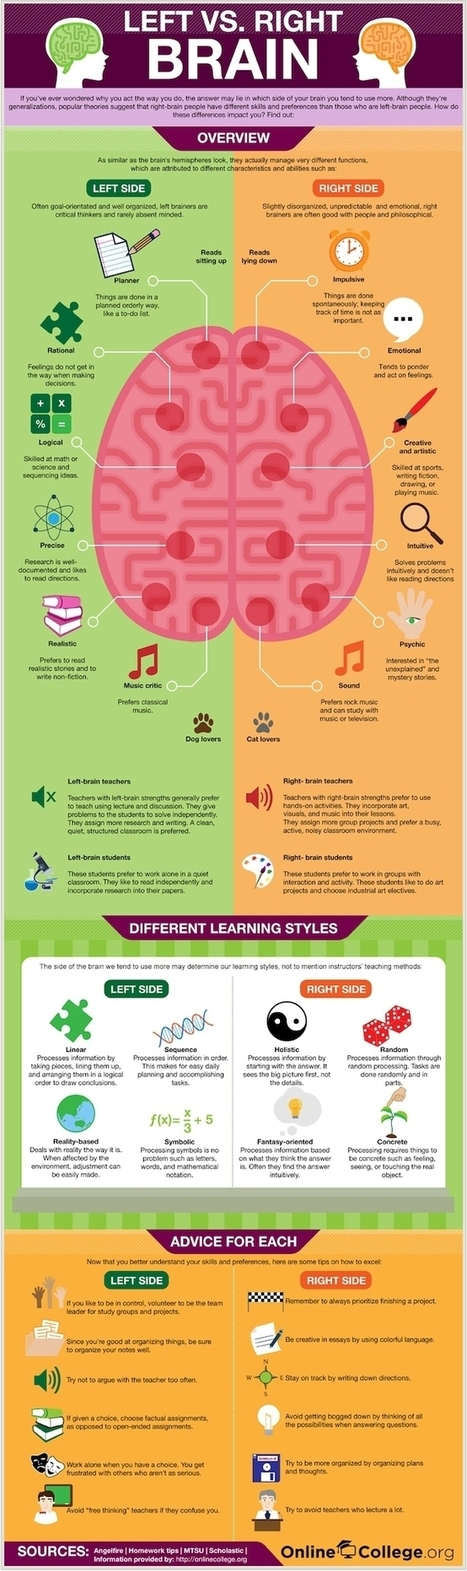 Left Brain vs Right Brain - Strengths and Learning Styles - The Coffee Klatch | Infographics | Scoop.it